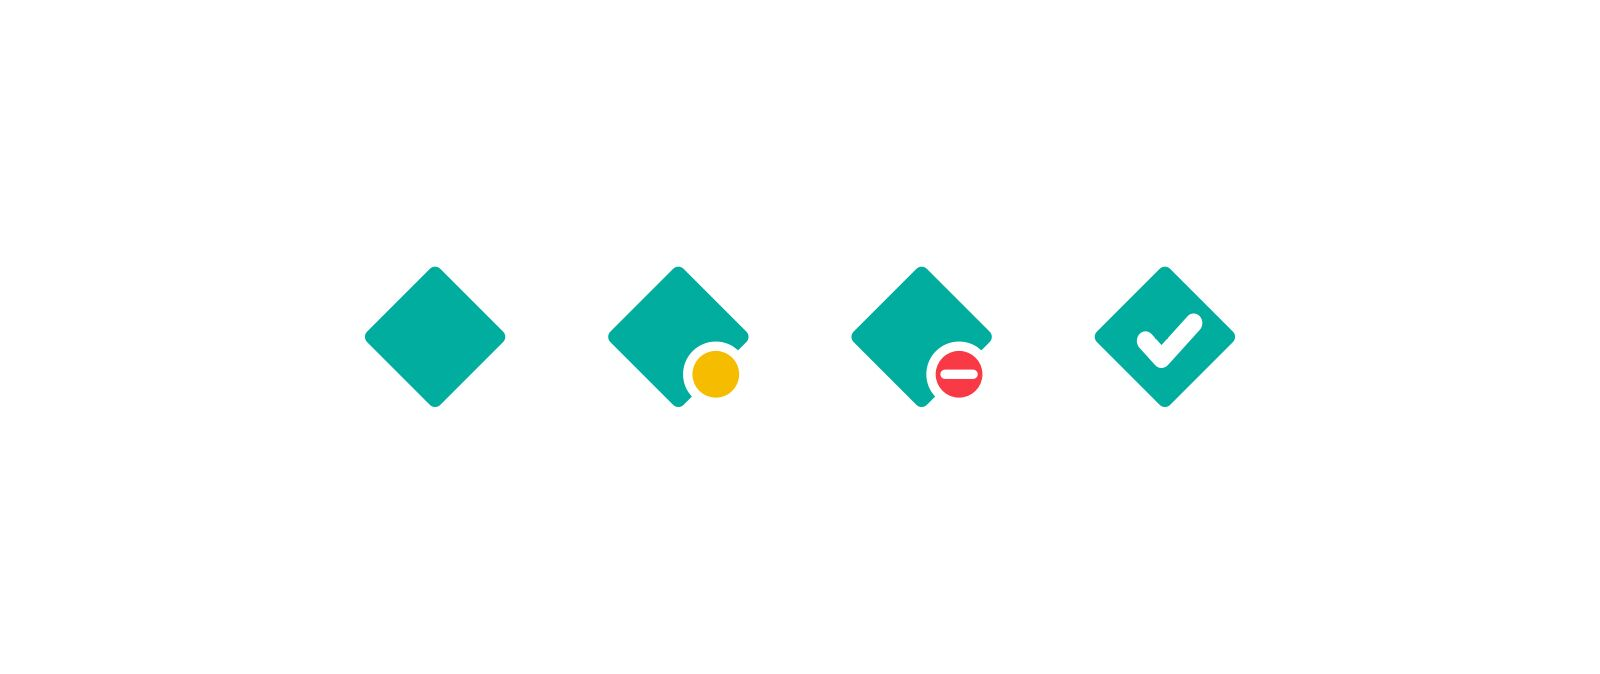 4 versions of the favicon: 1. A simplified version of the Netlify logo – a teal square rotated 45 degrees. 2. Simplified logo with a yellow circle. 3. Simplified logo with a red circle with a white line through it. 4. Simplified logo with a checkmark.